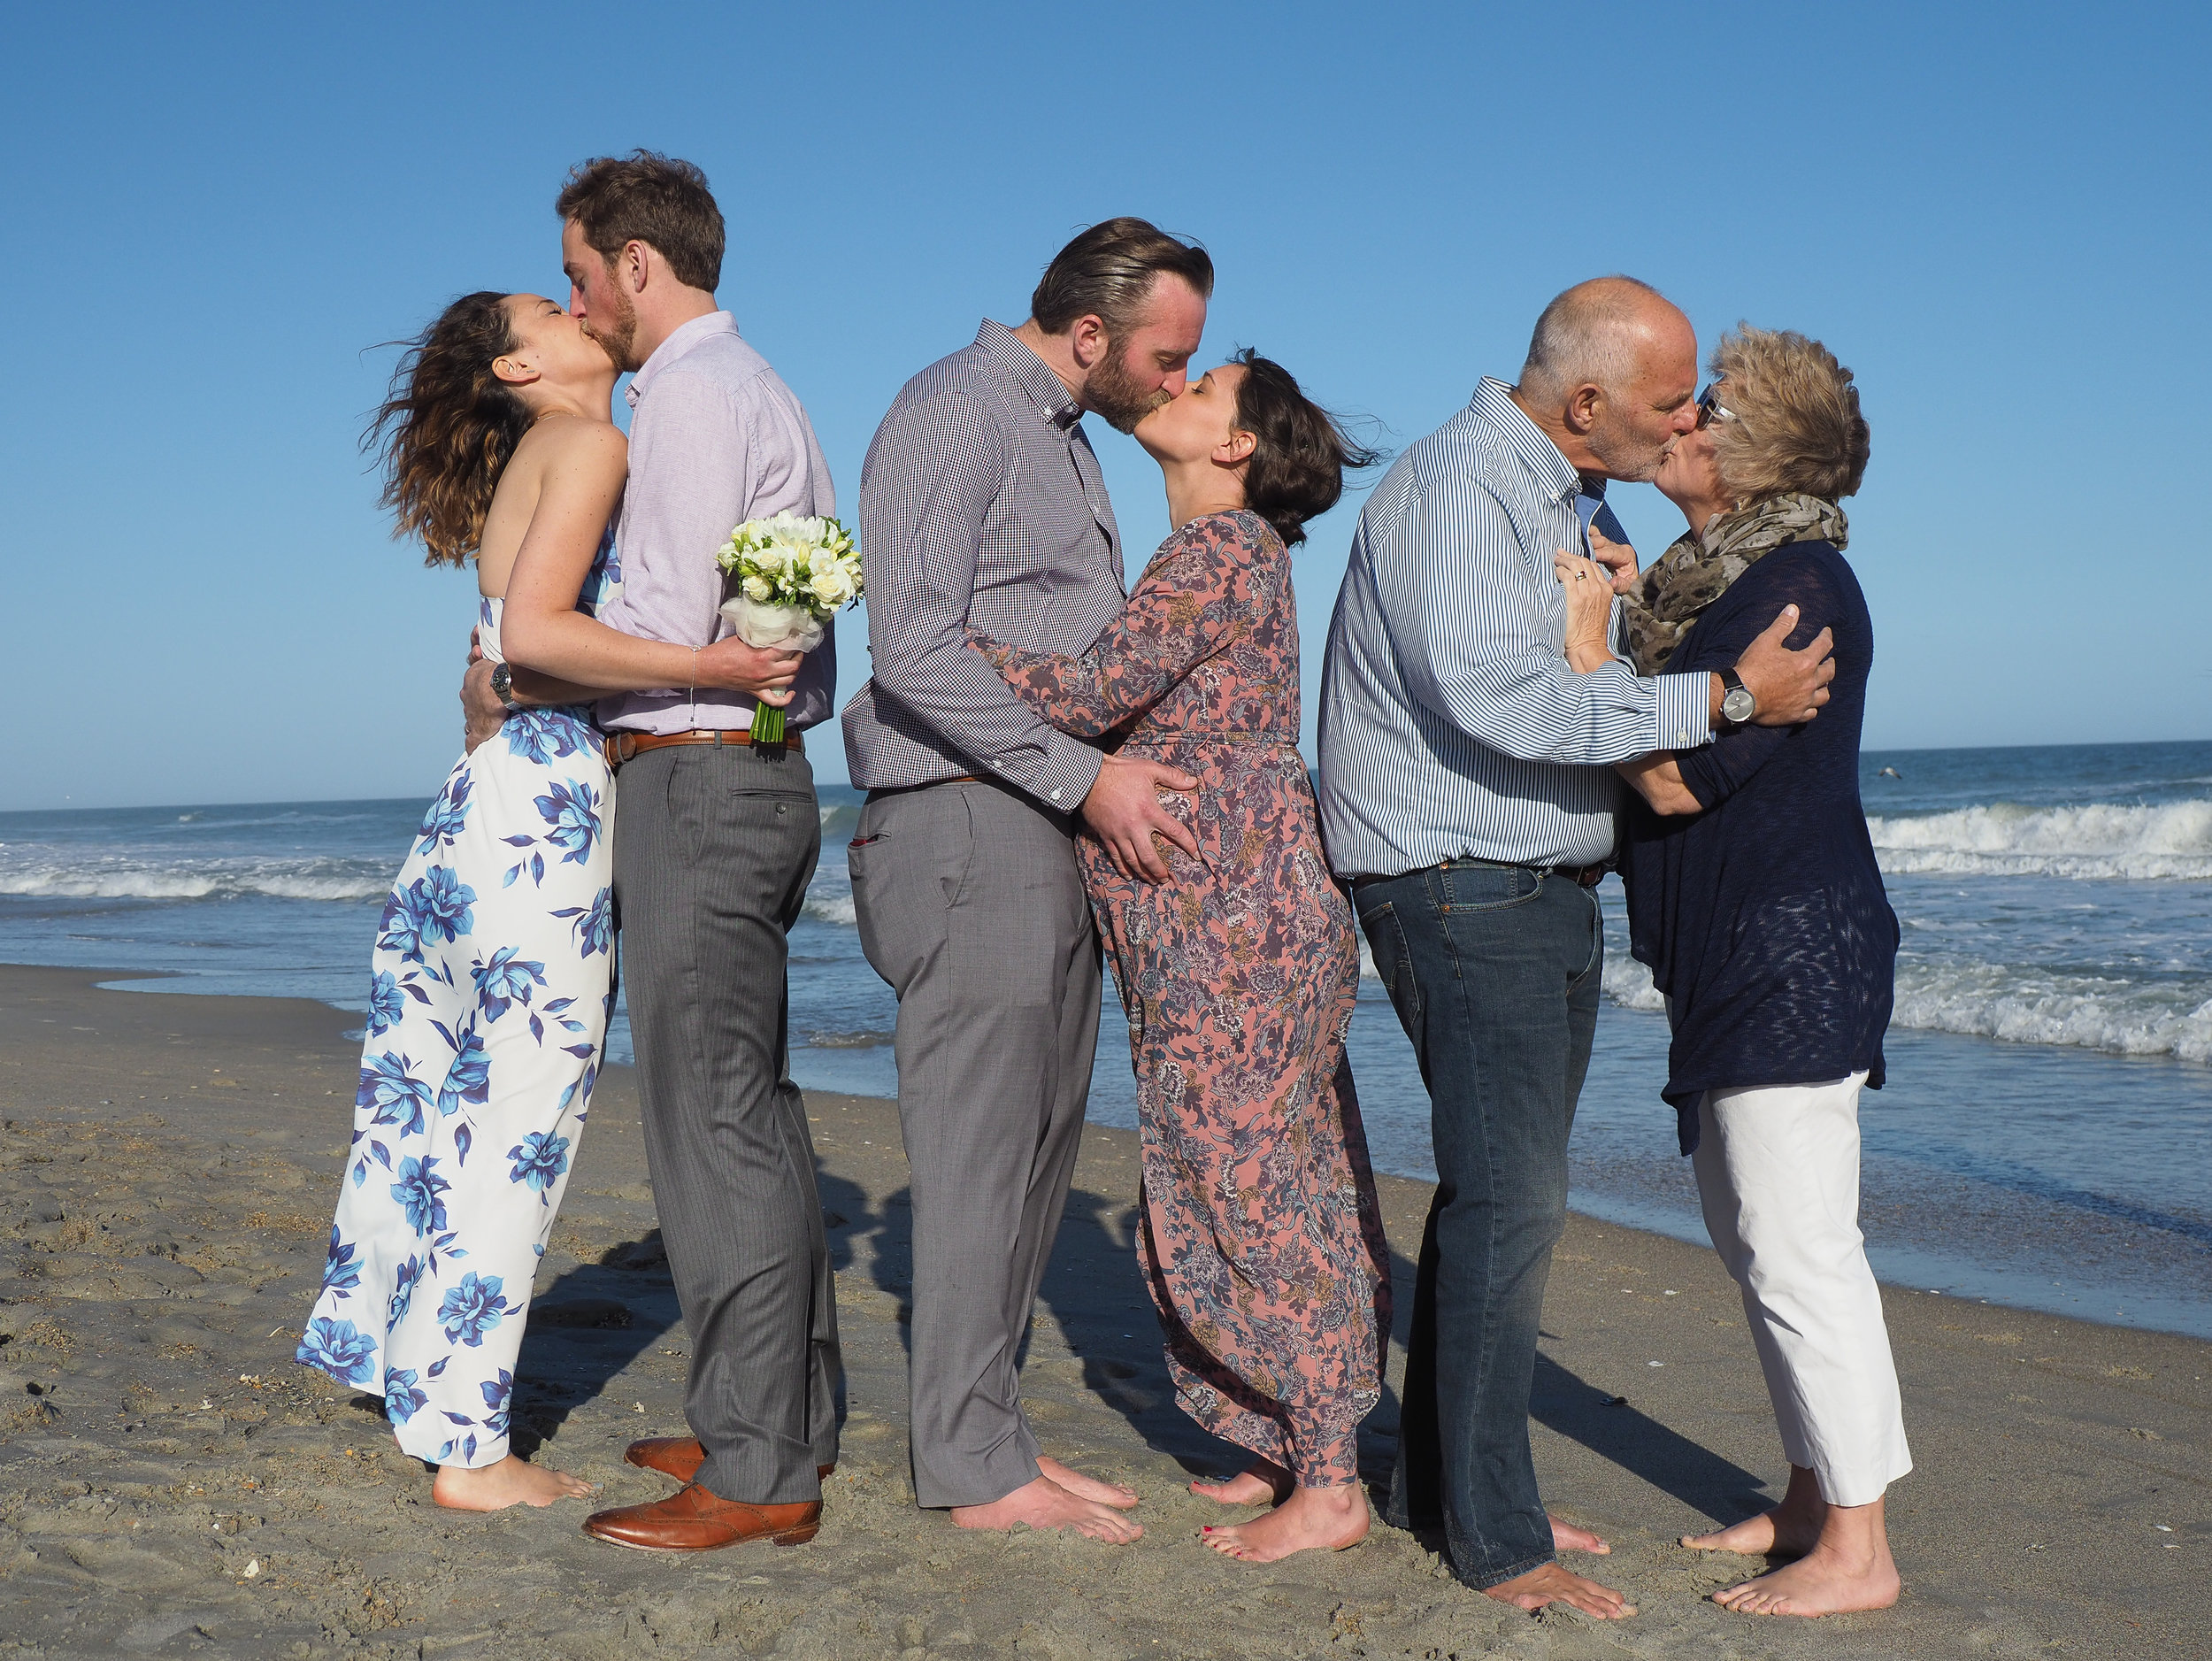 Group Kiss. All the married people share a kiss on the beach. Wrightsville Beach, NC.